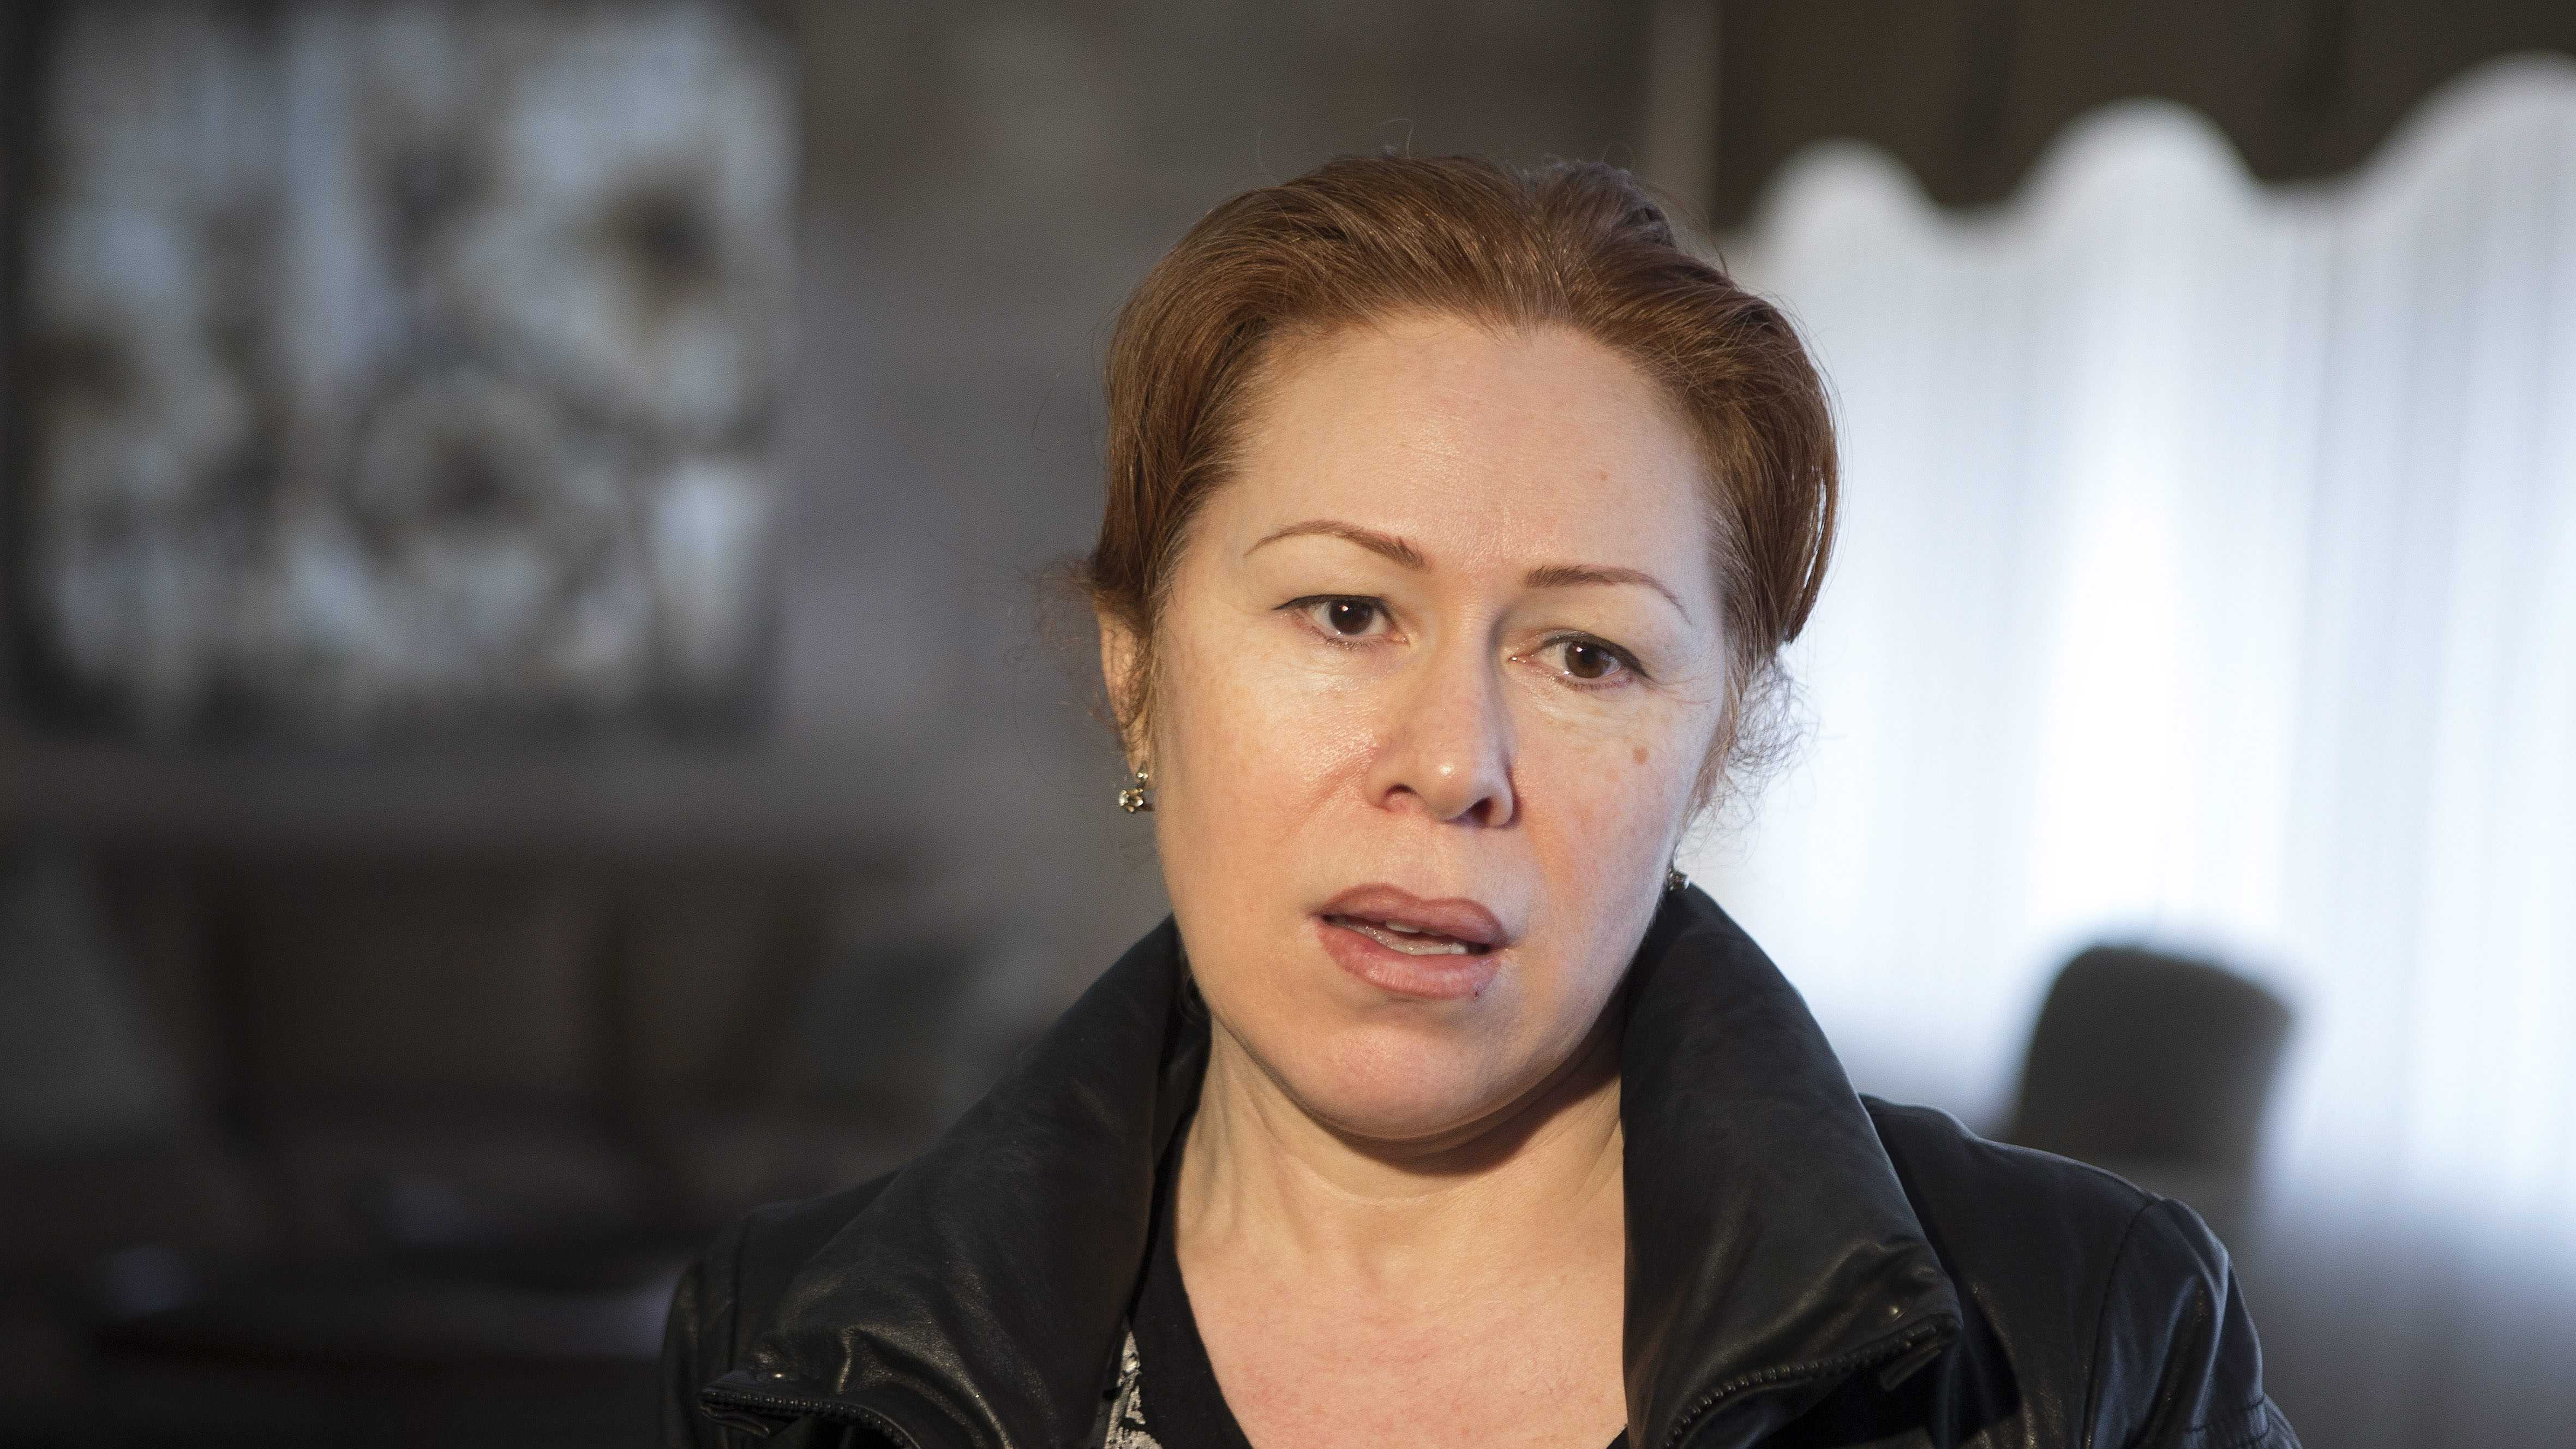 Maret Tsarnaeva, an aunt of the two suspects in the Boston Marathon bombing, speaks to journalists in the lobby of her apartment building in Toronto